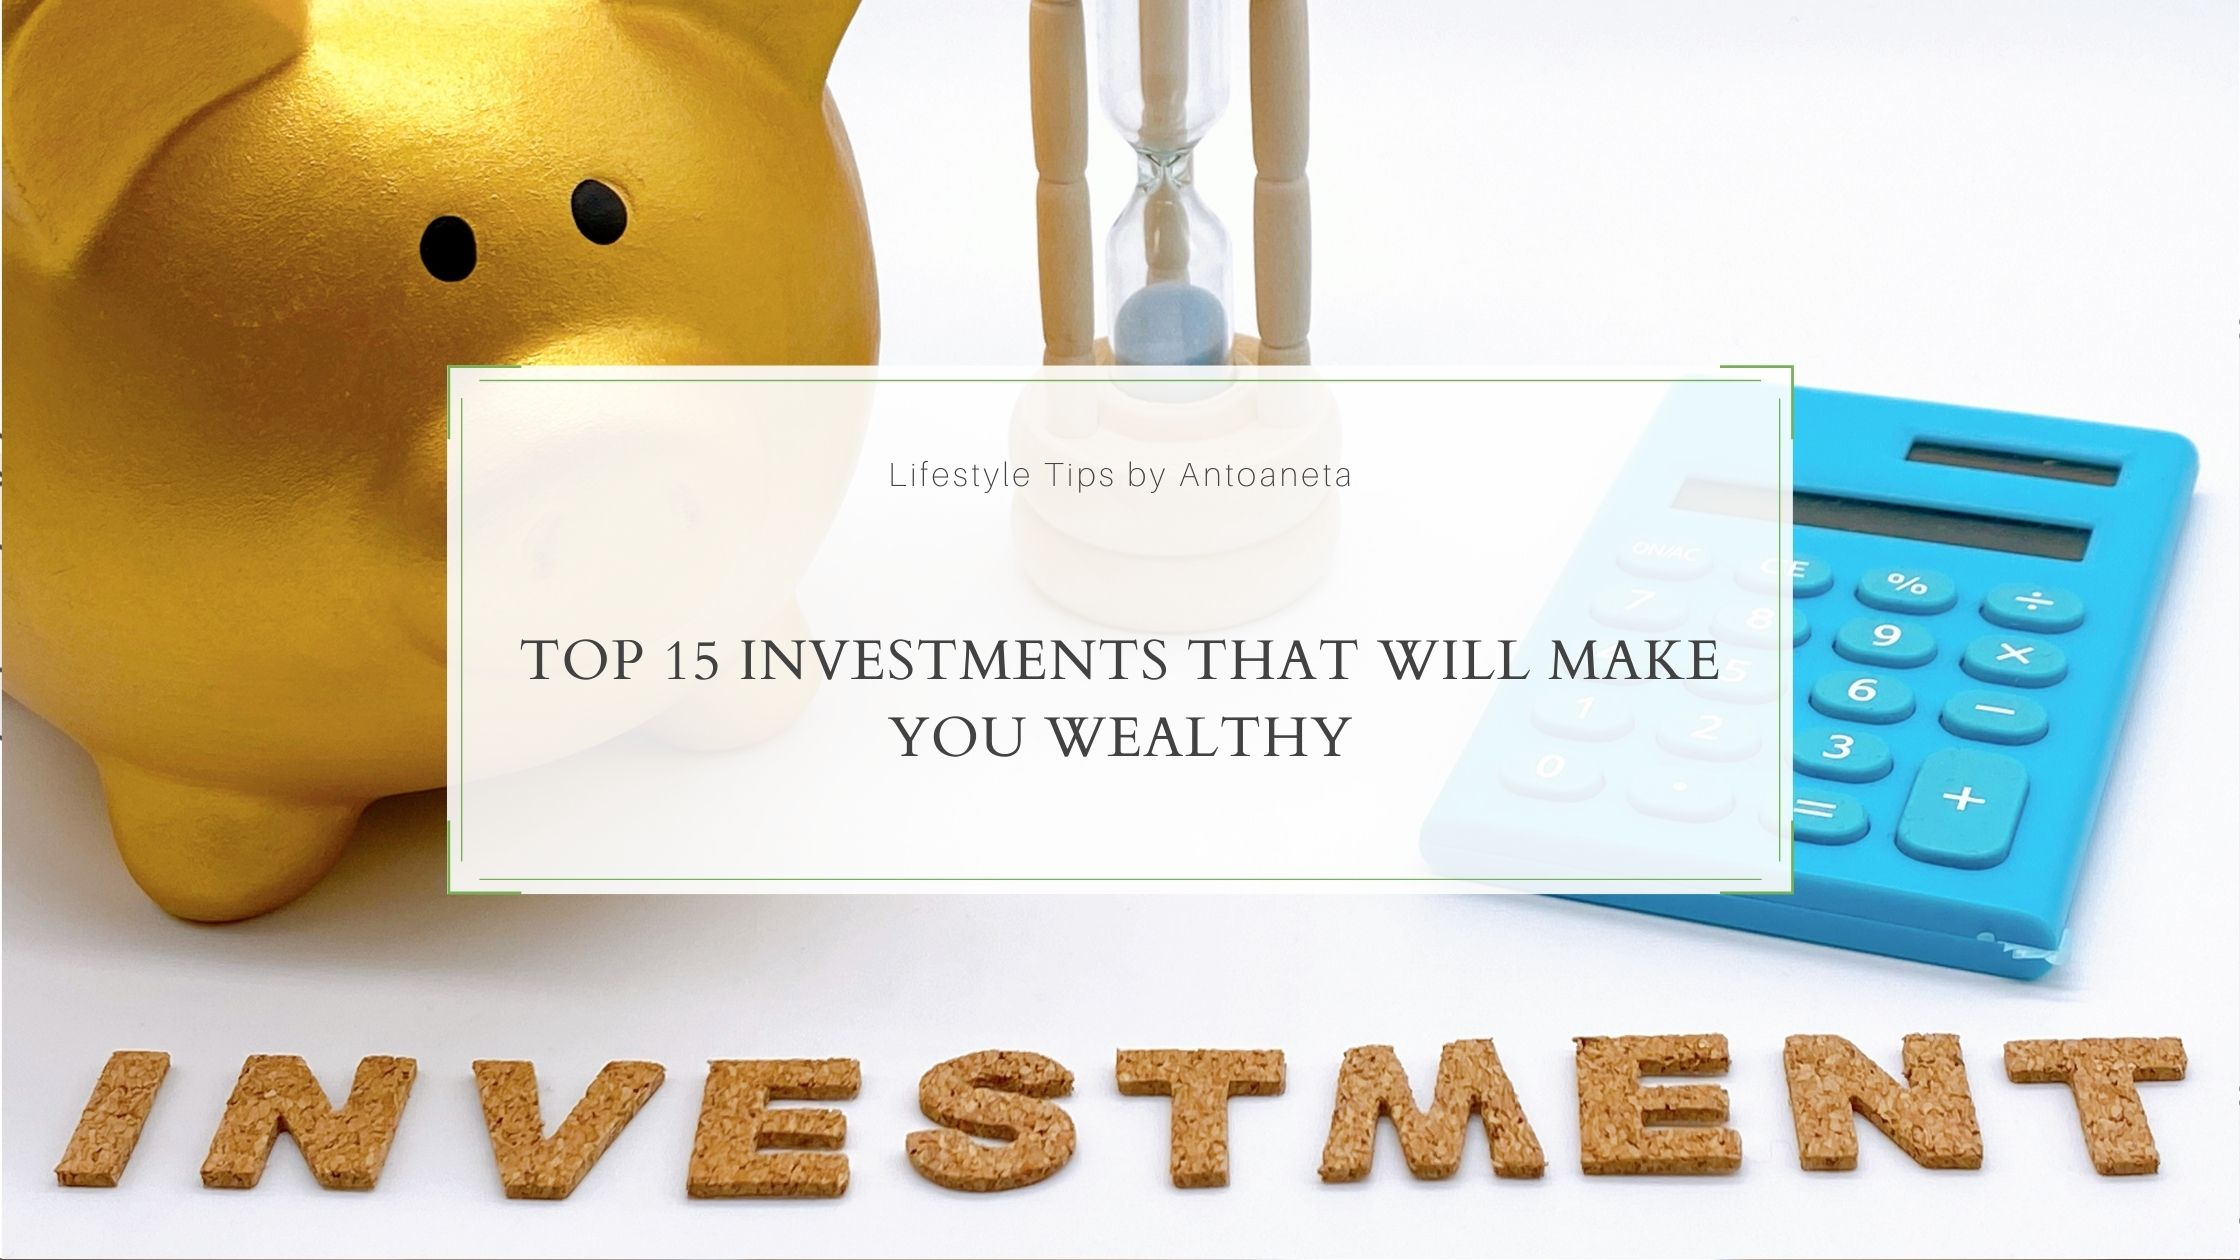 Top 15 Investments That Will Make You Wealthy